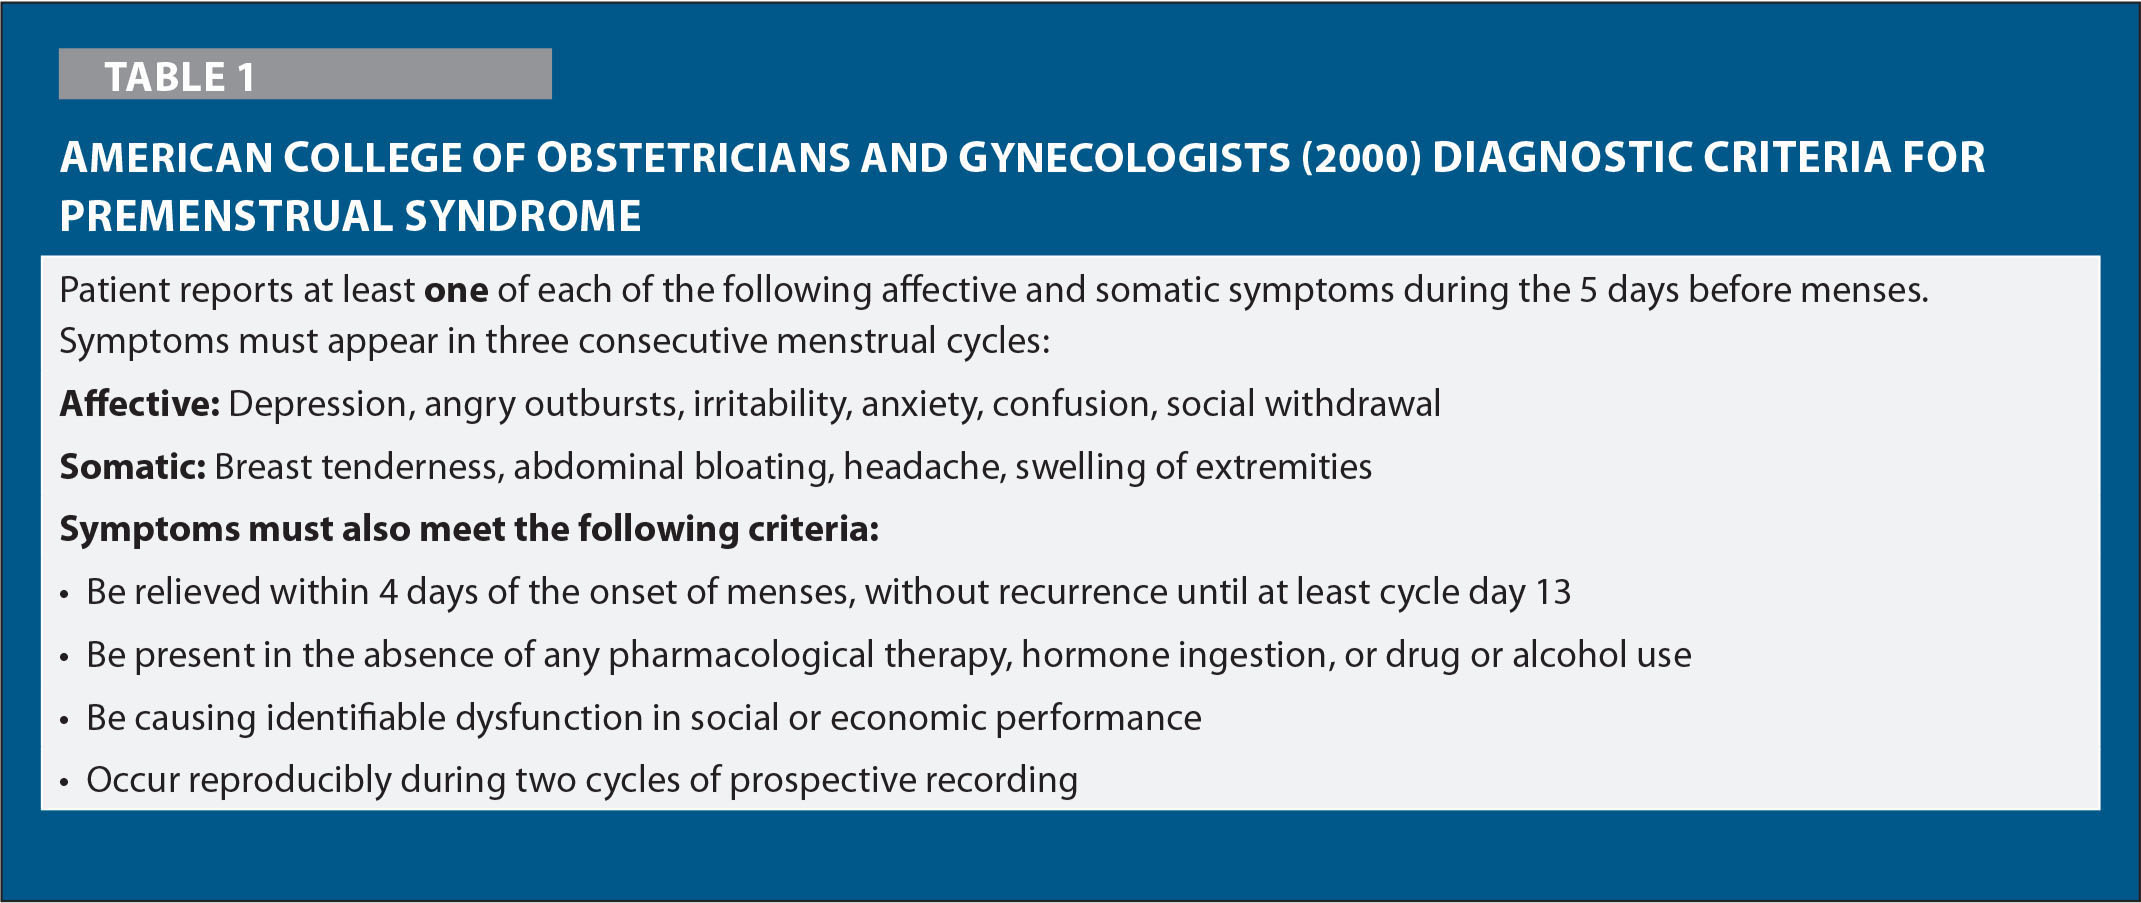 American College of Obstetricians and Gynecologists (2000) Diagnostic Criteria for Premenstrual Syndrome